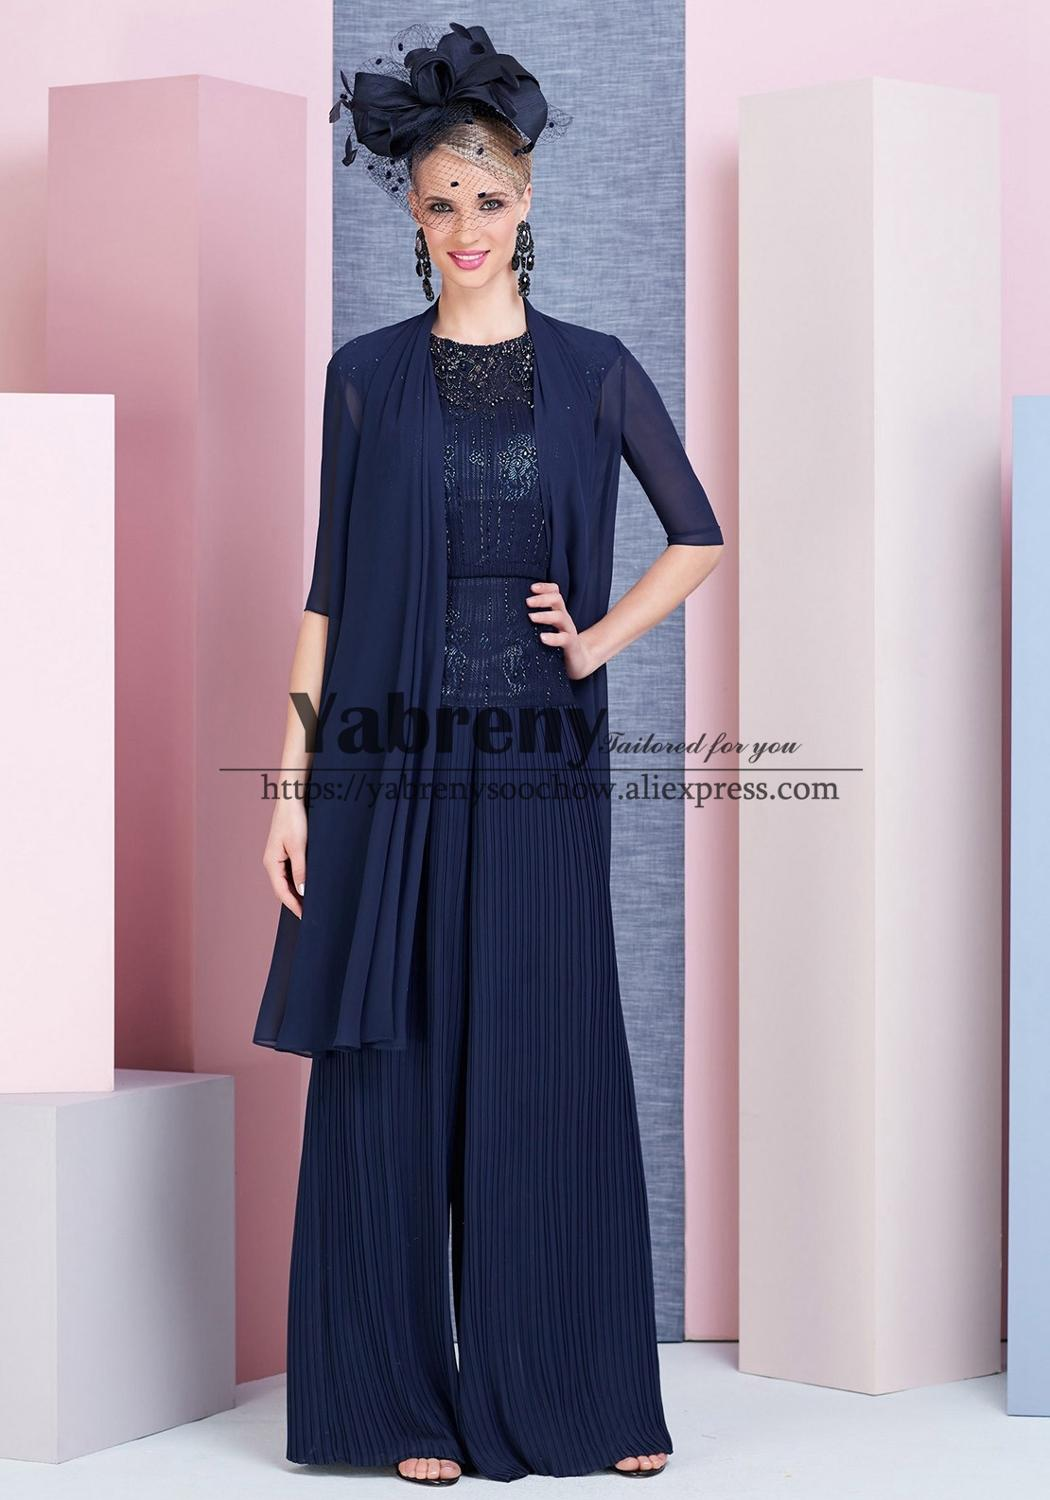 NAVY Mother Of The Bride Trousers Outfit Accordion Pleats Pants Suits